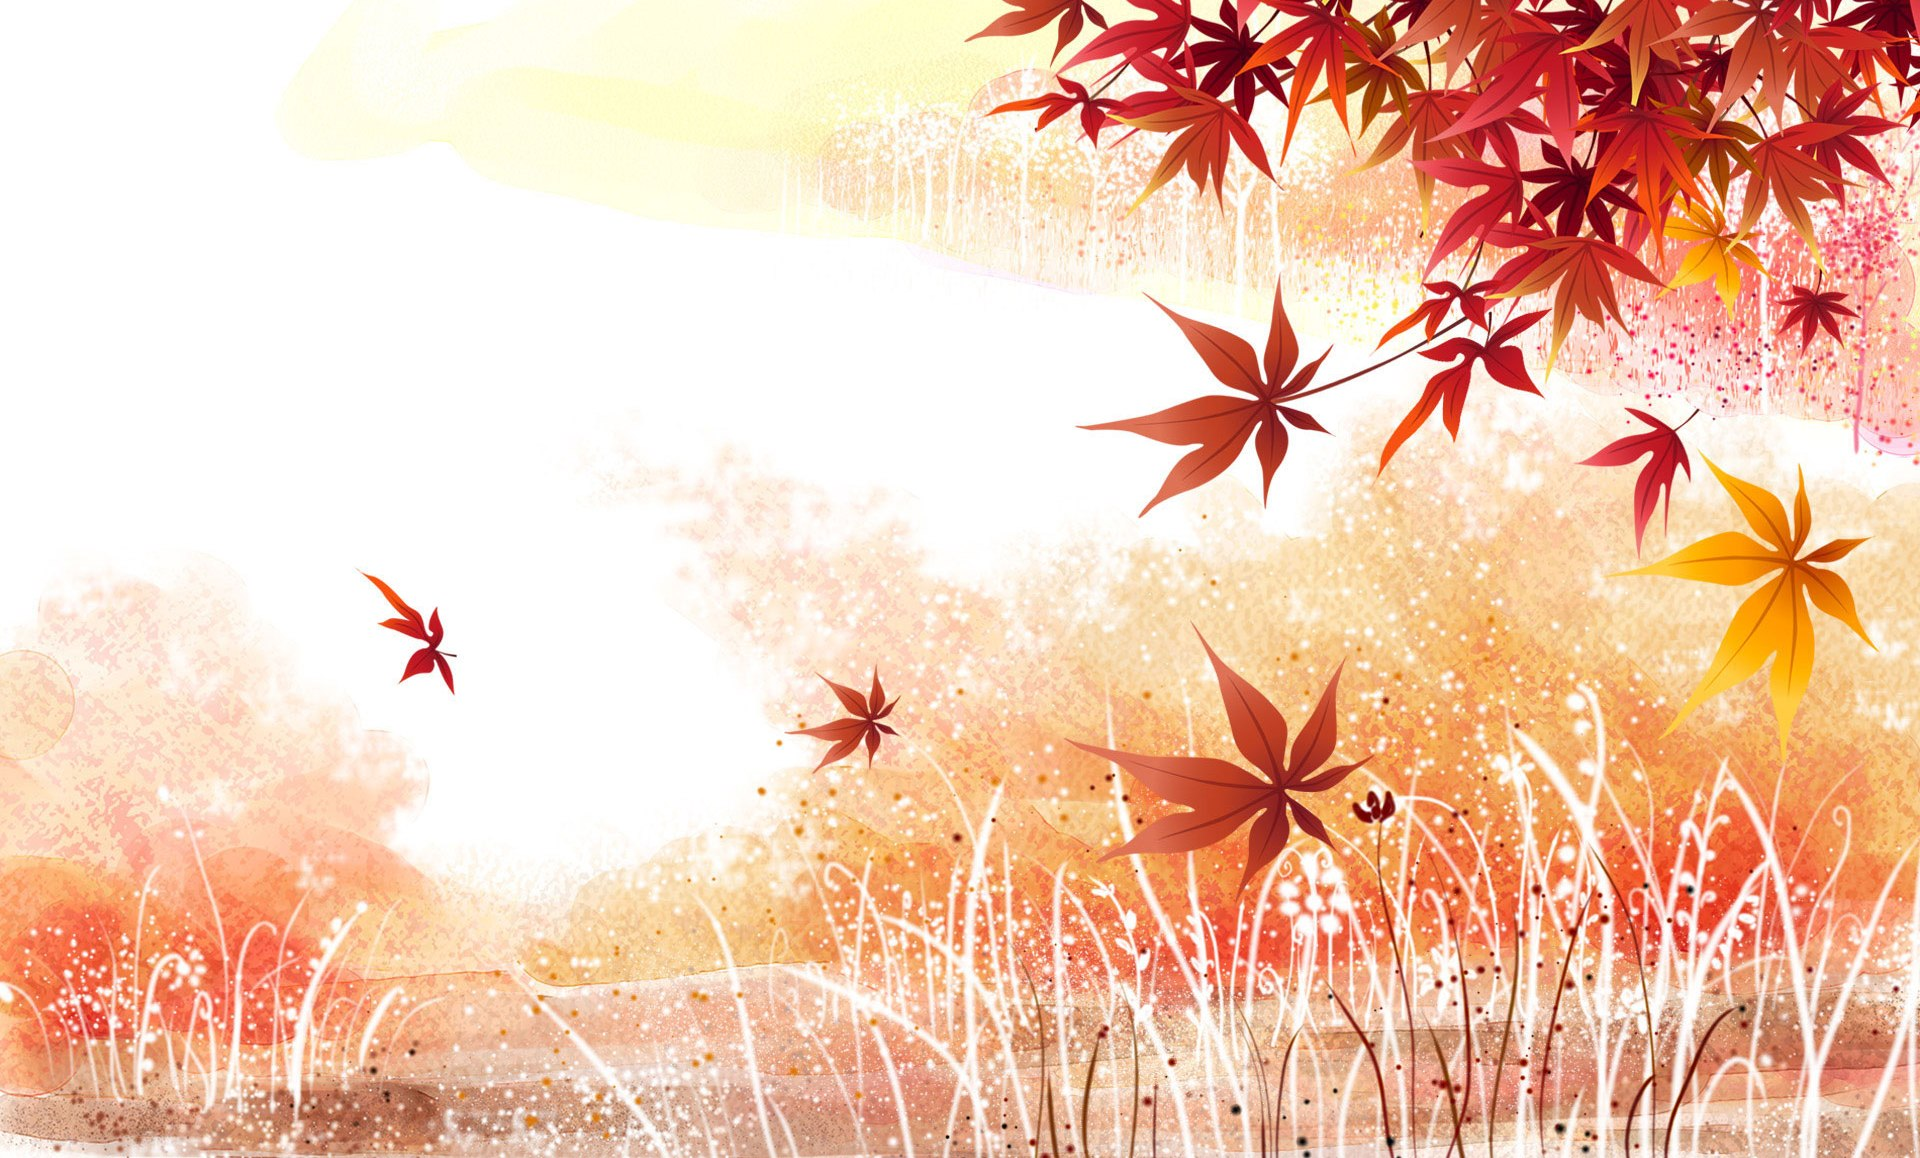 2011 Autumn HD Wallpapers to Download CreativityWindow 1920x1158